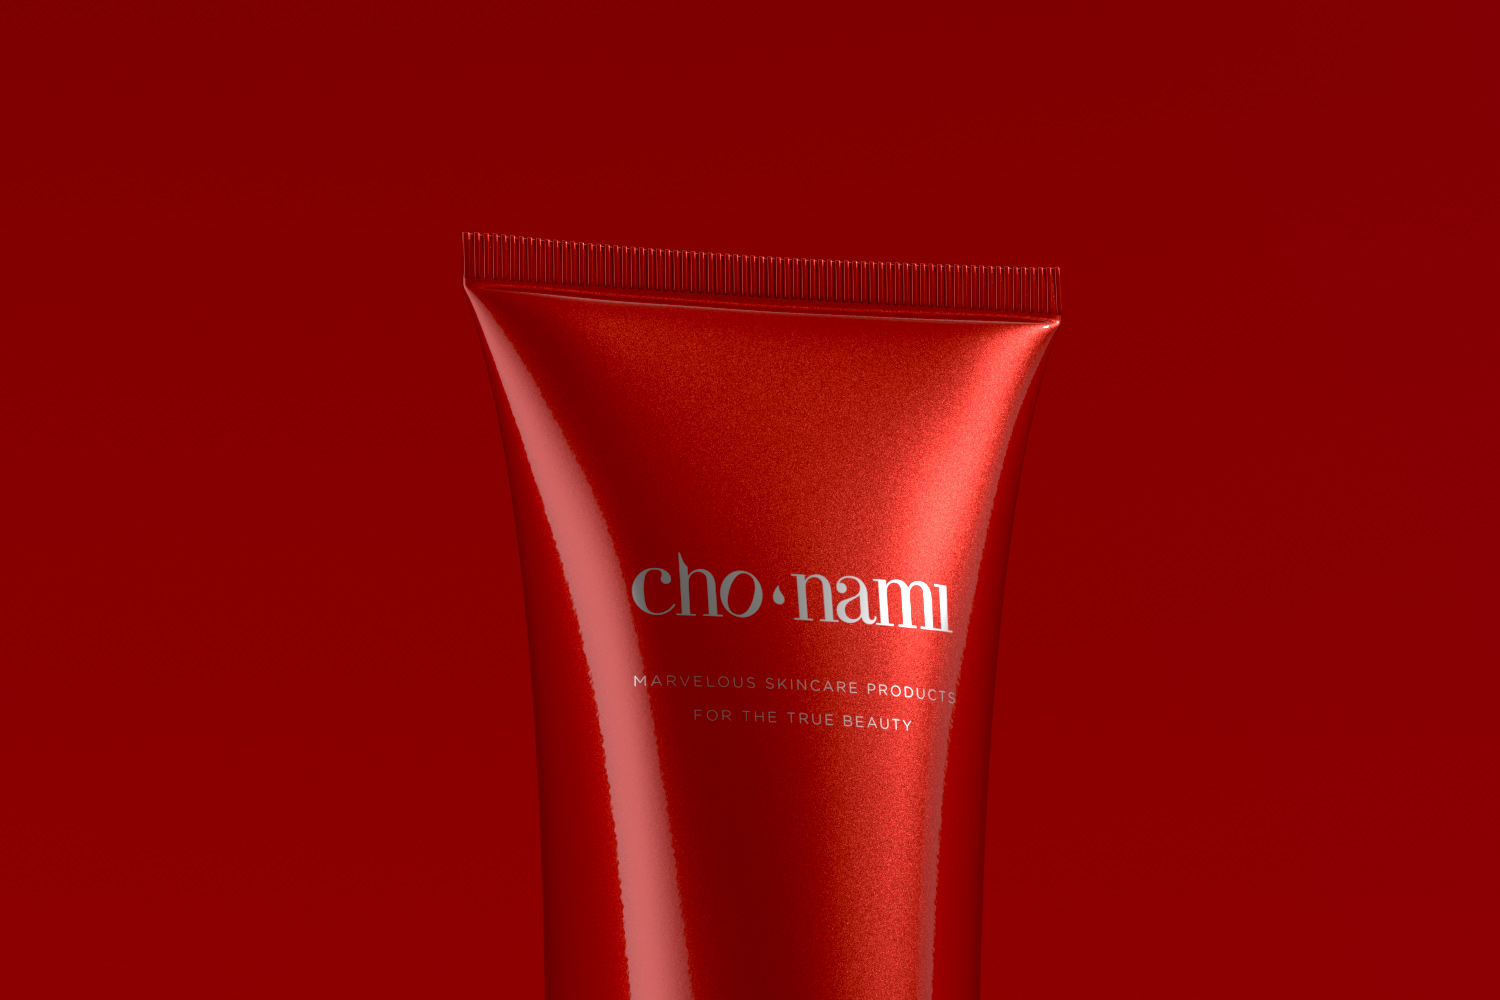 cho nami refine skin product close up photography on red background